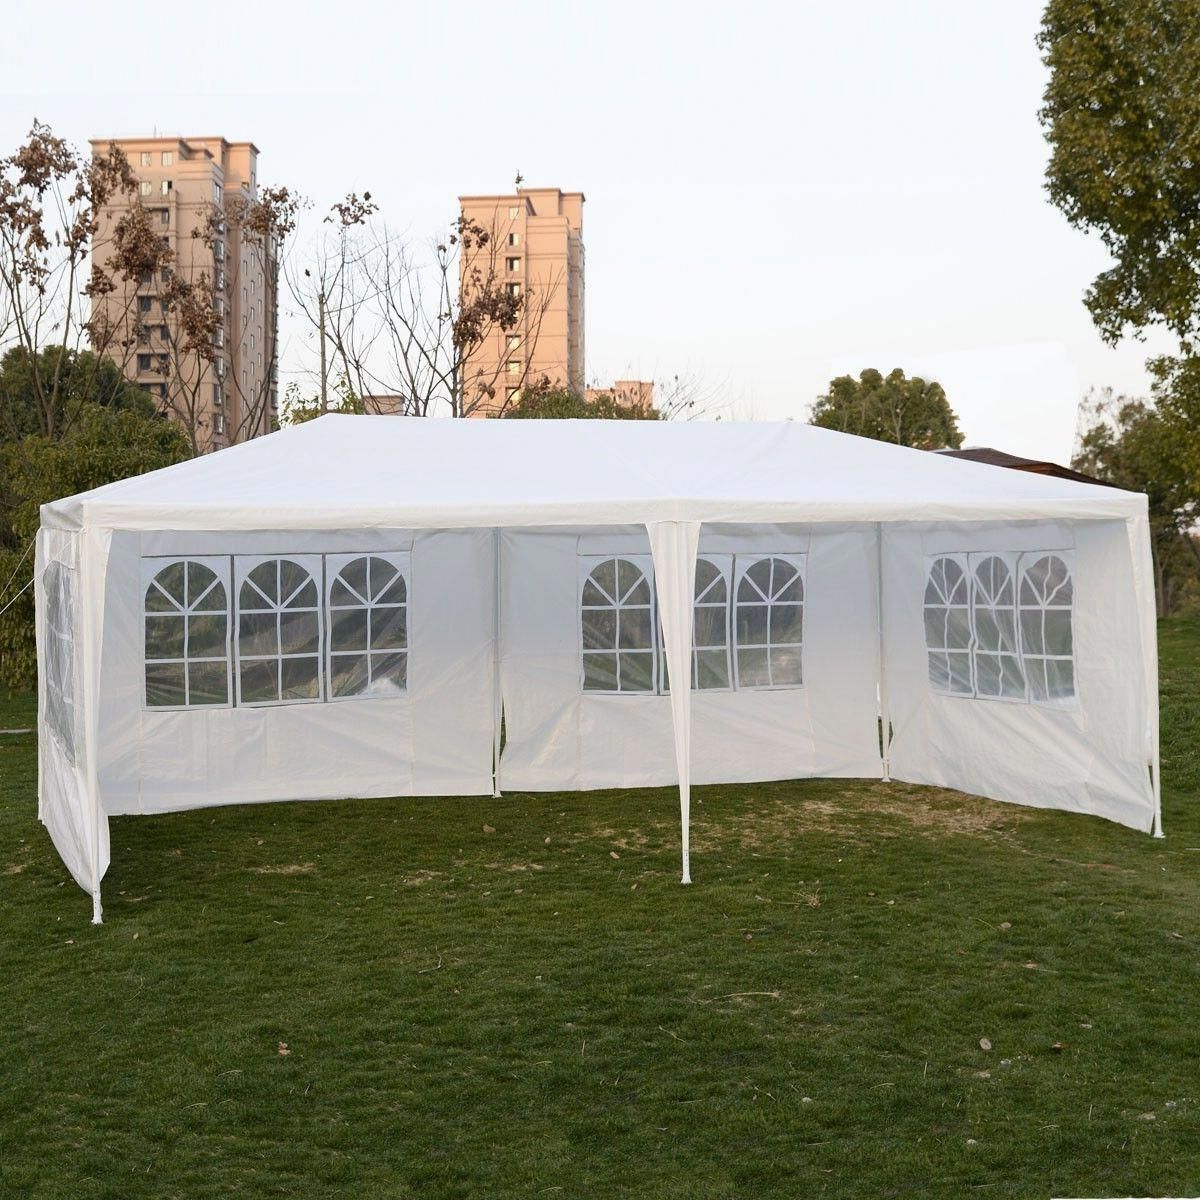 Wedding Reception Decoration Ideas Weddinginvitationscheap Weddingcenterpieceideas Tent Outdoor Living Gazebo